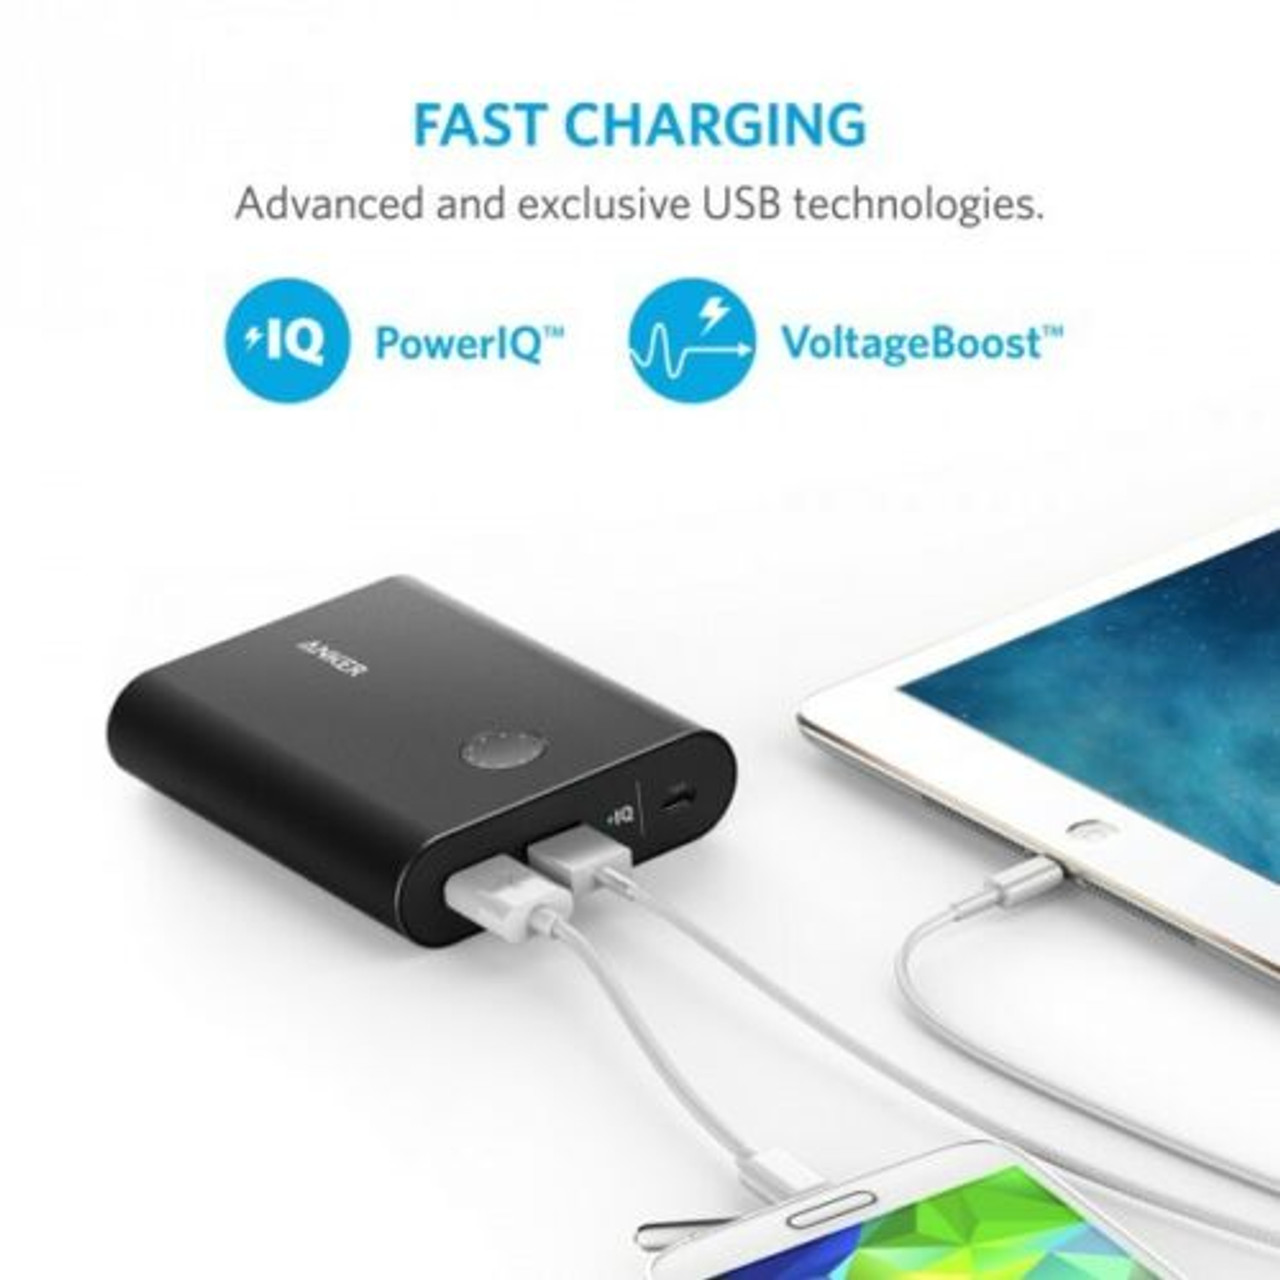 Anker A1316H11/A1316H41/A1316HB1 PowerCore+ 13400mAh Power Bank - Black/Silver/Rose Gold - RRP $129.95